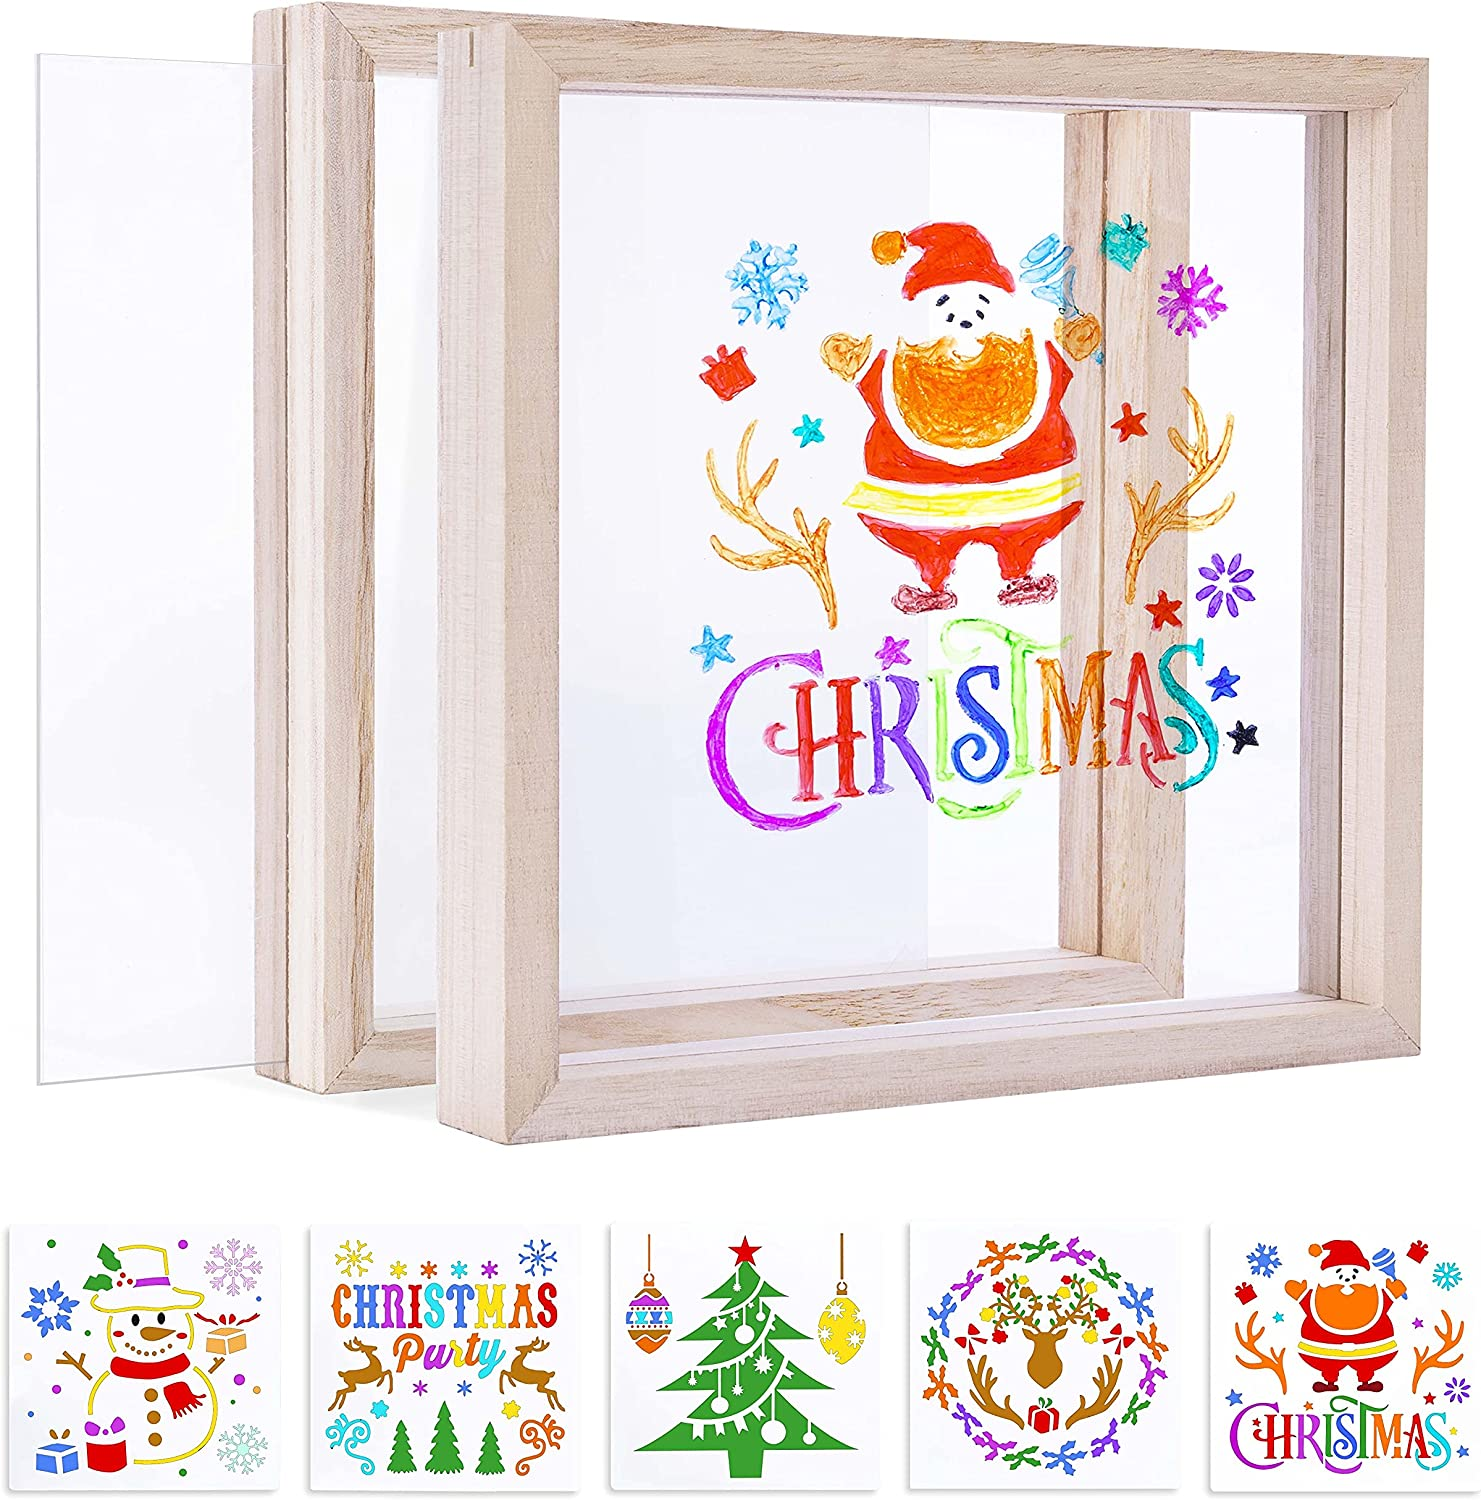 Woiworco Acrylic Stained Glass Painting Window DIY Ranking TOP8 Kit Max 70% OFF Art Sunc